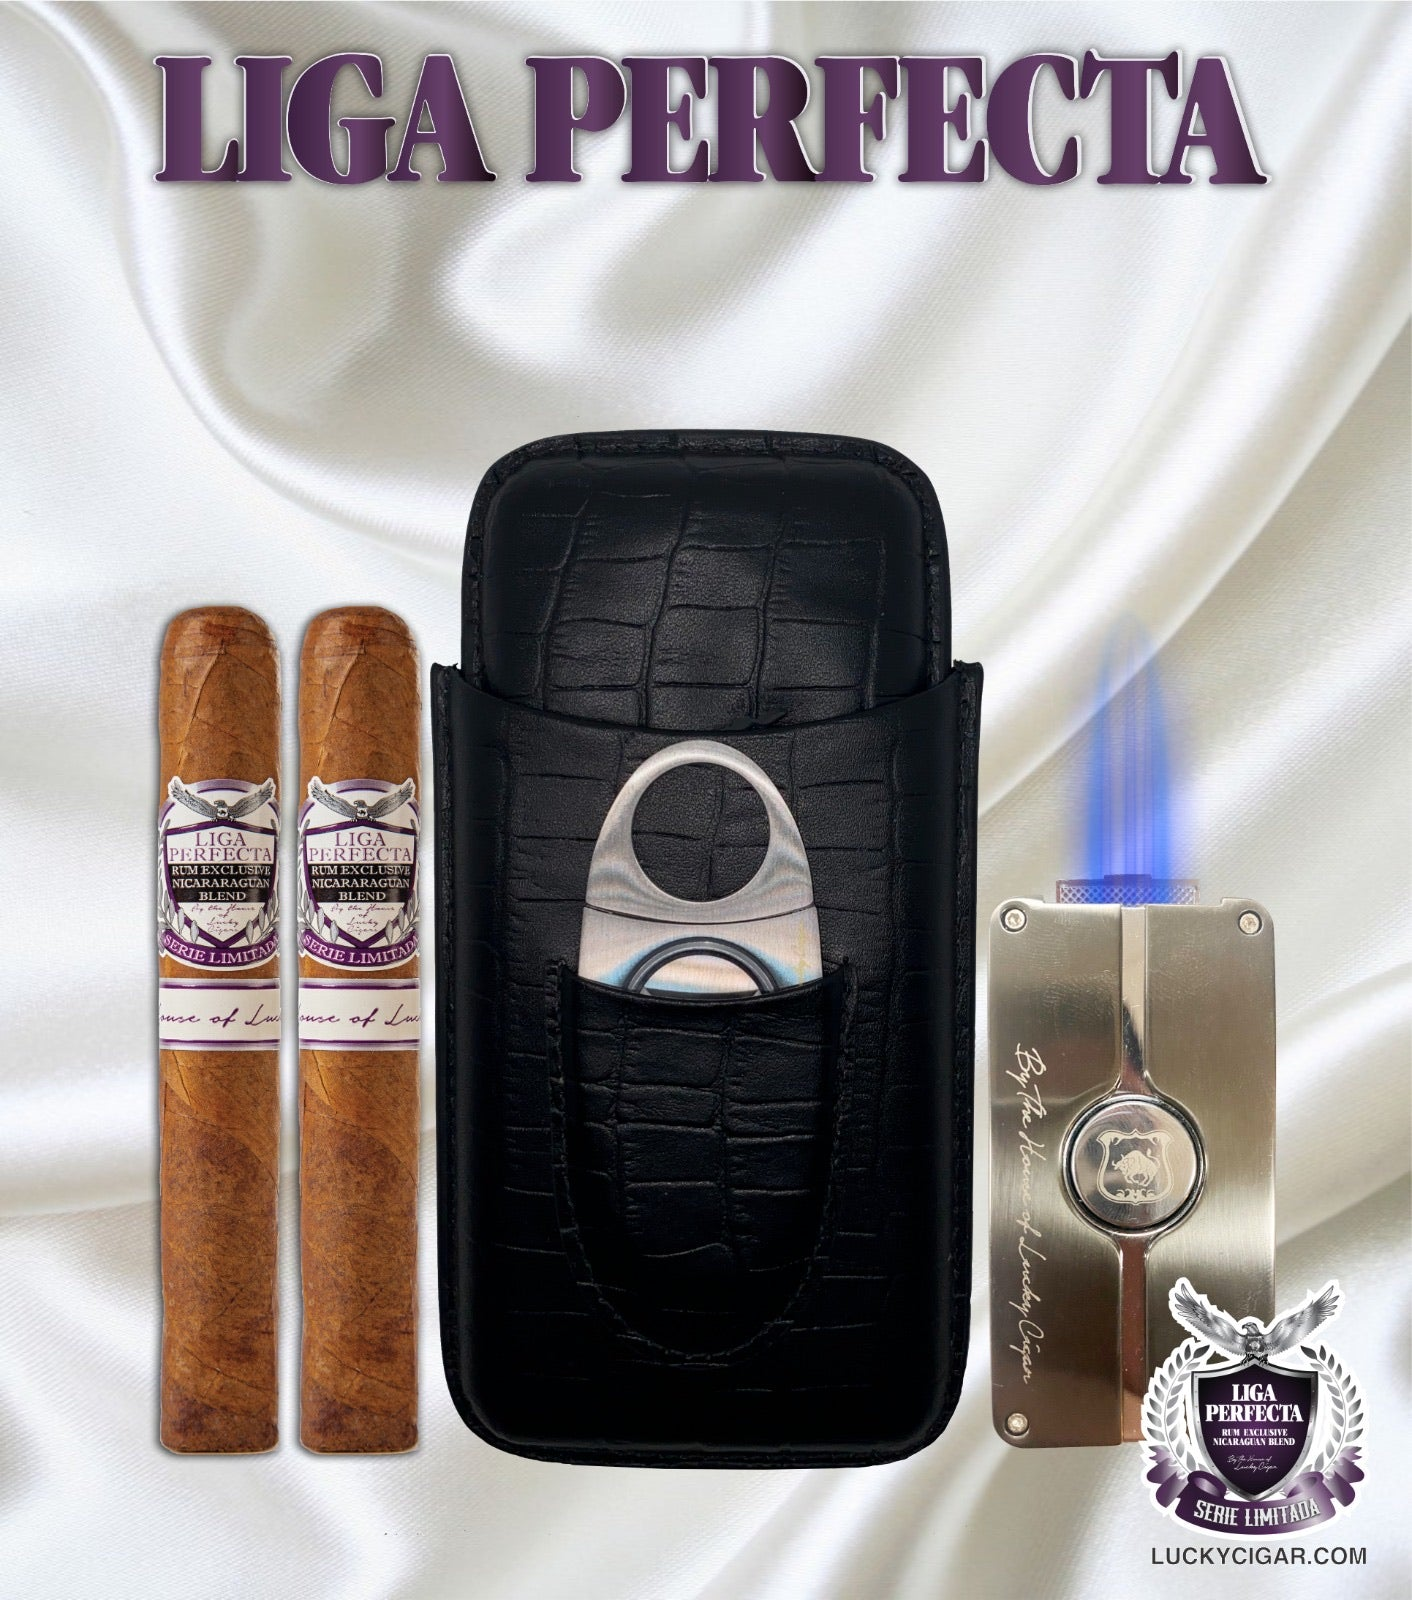 Leather set liga perfecta set includes: